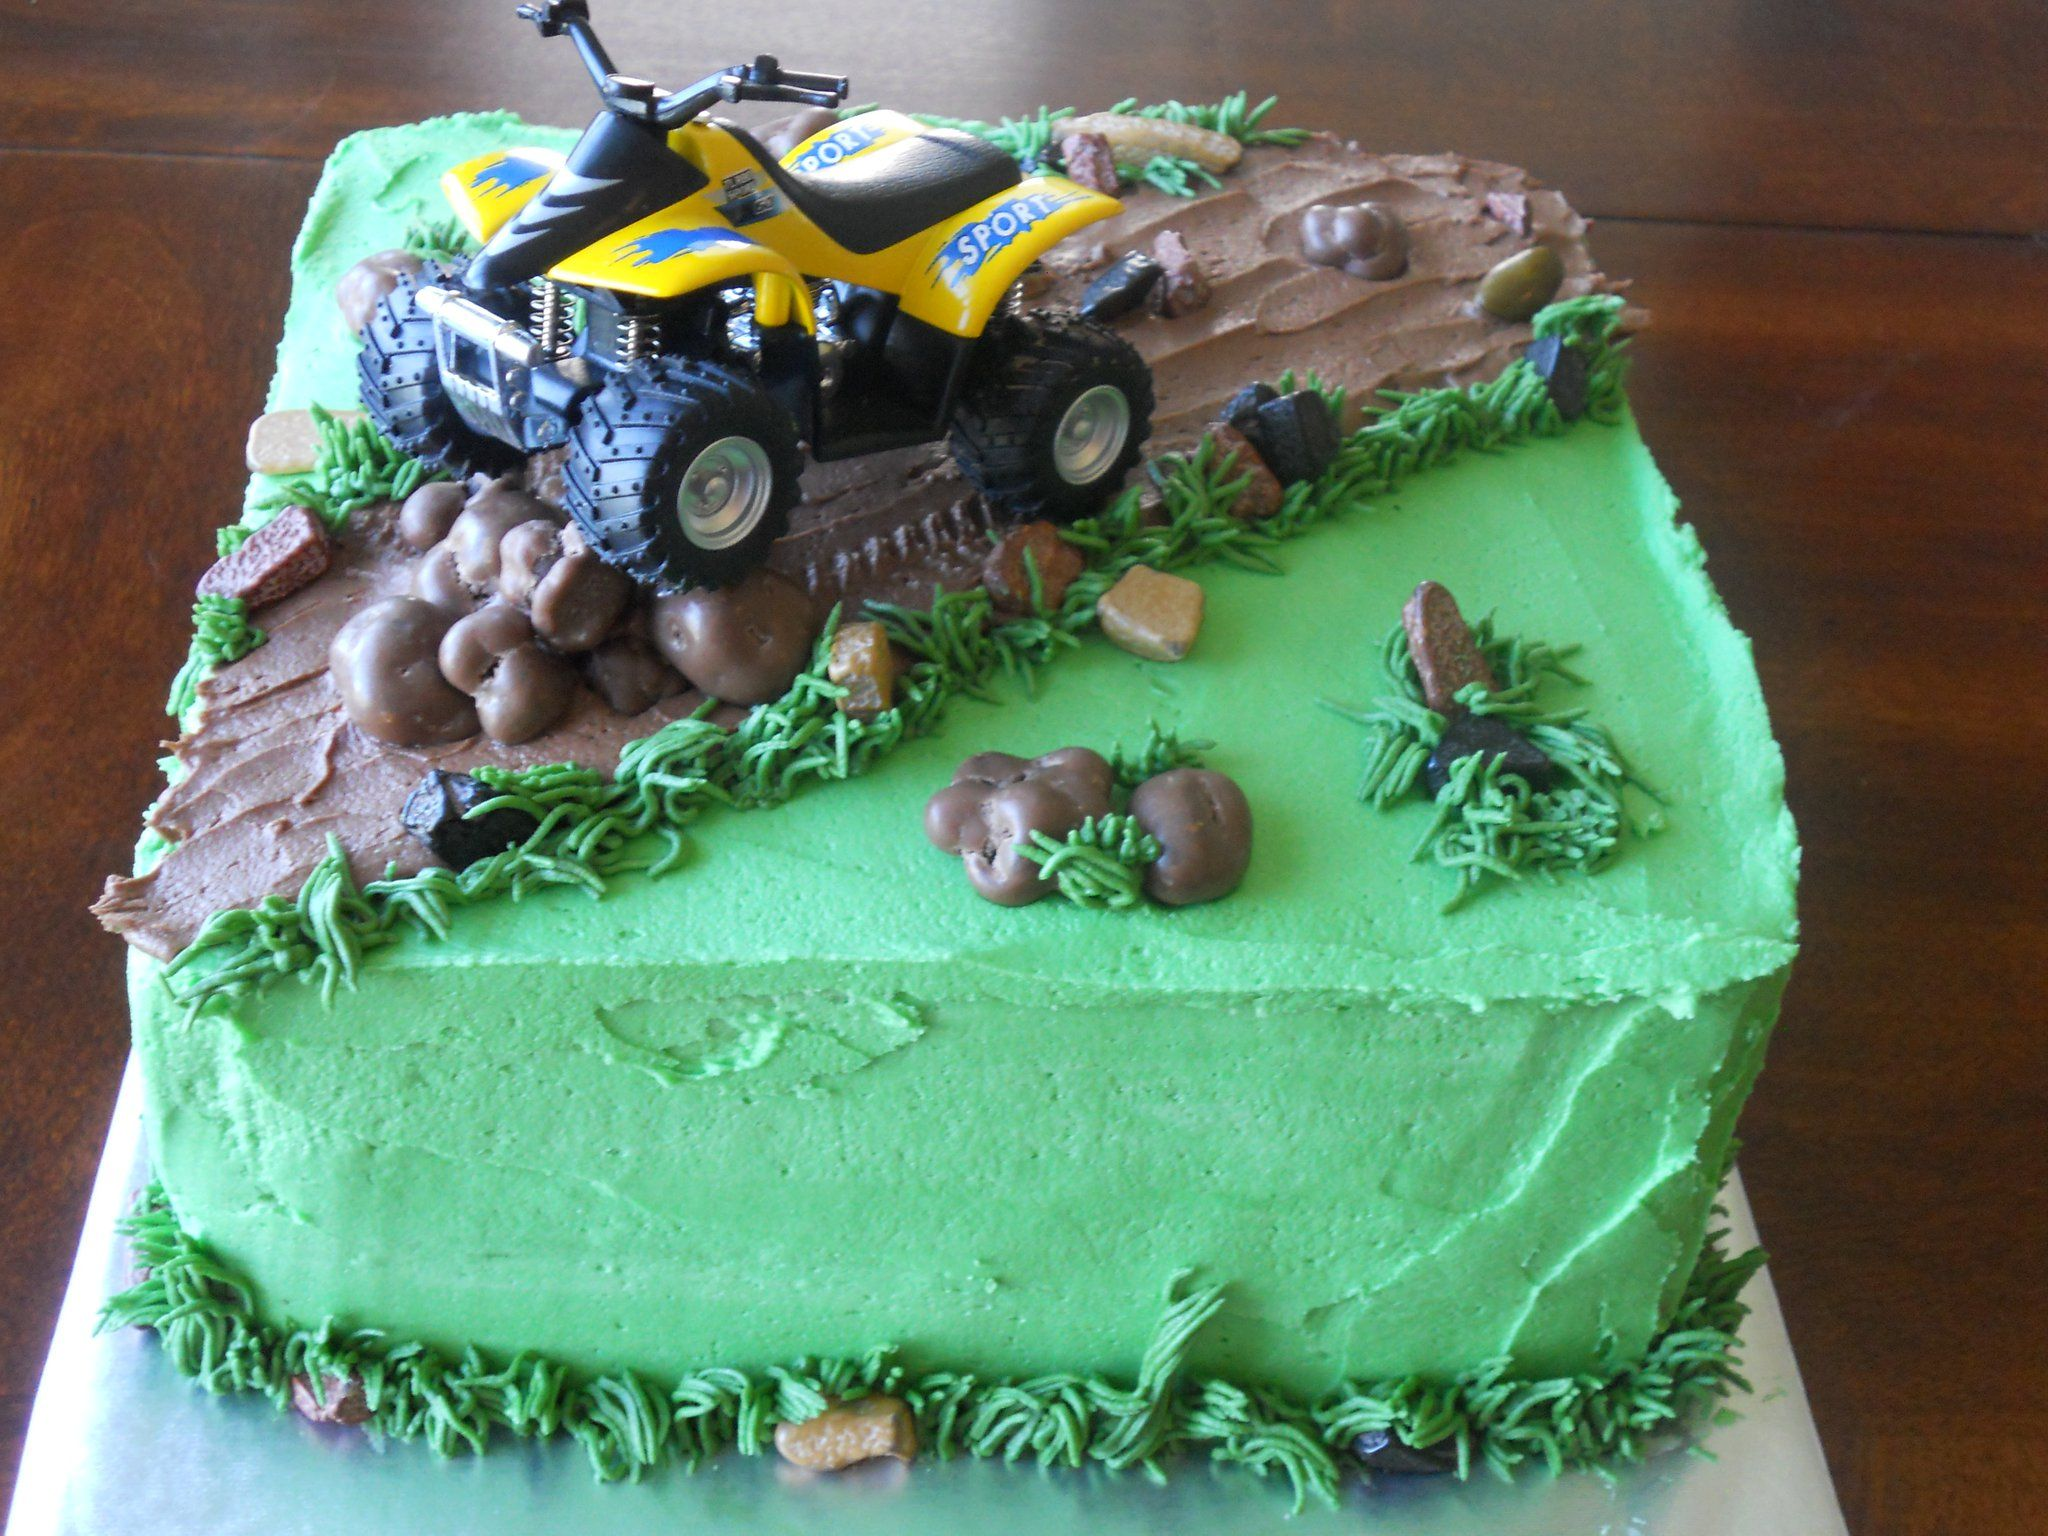 Quad Cake Dirt Bike Cakes Recipes Baking Candy Decorations 15th